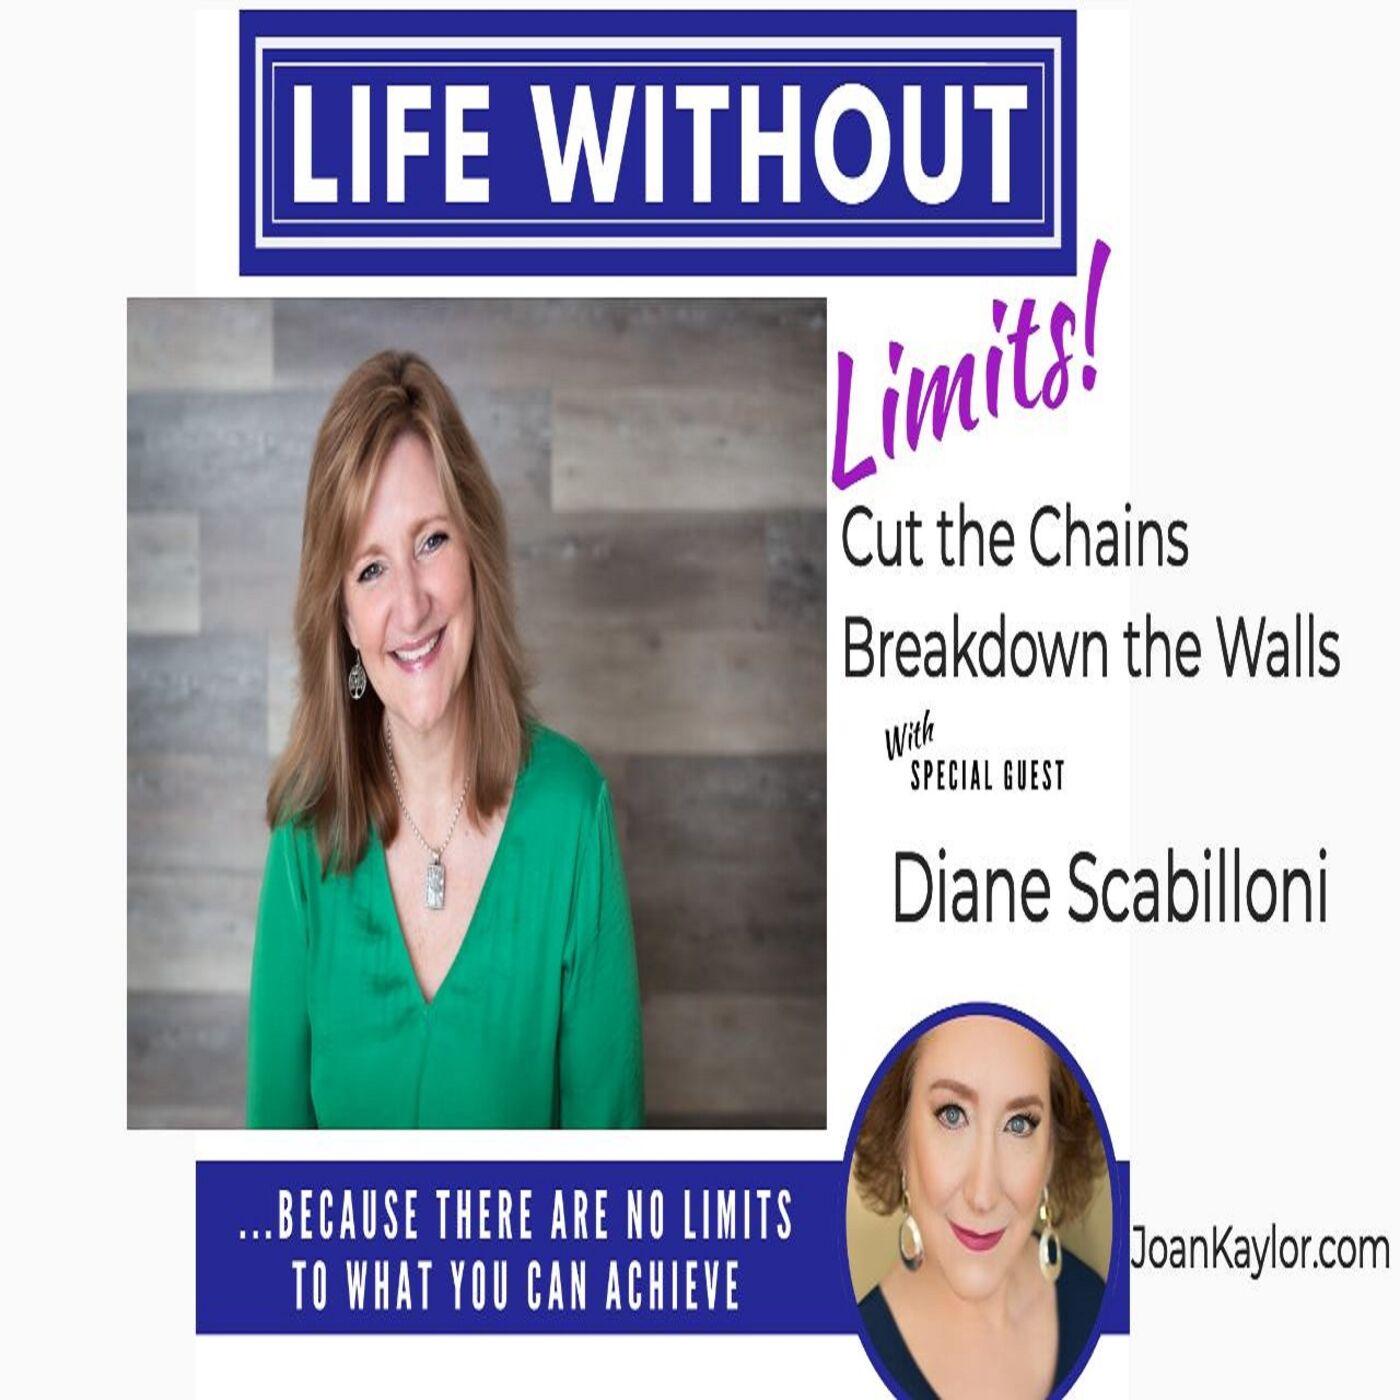 Cut the Chains/ Break Down the Walls with Diane Scabilloni